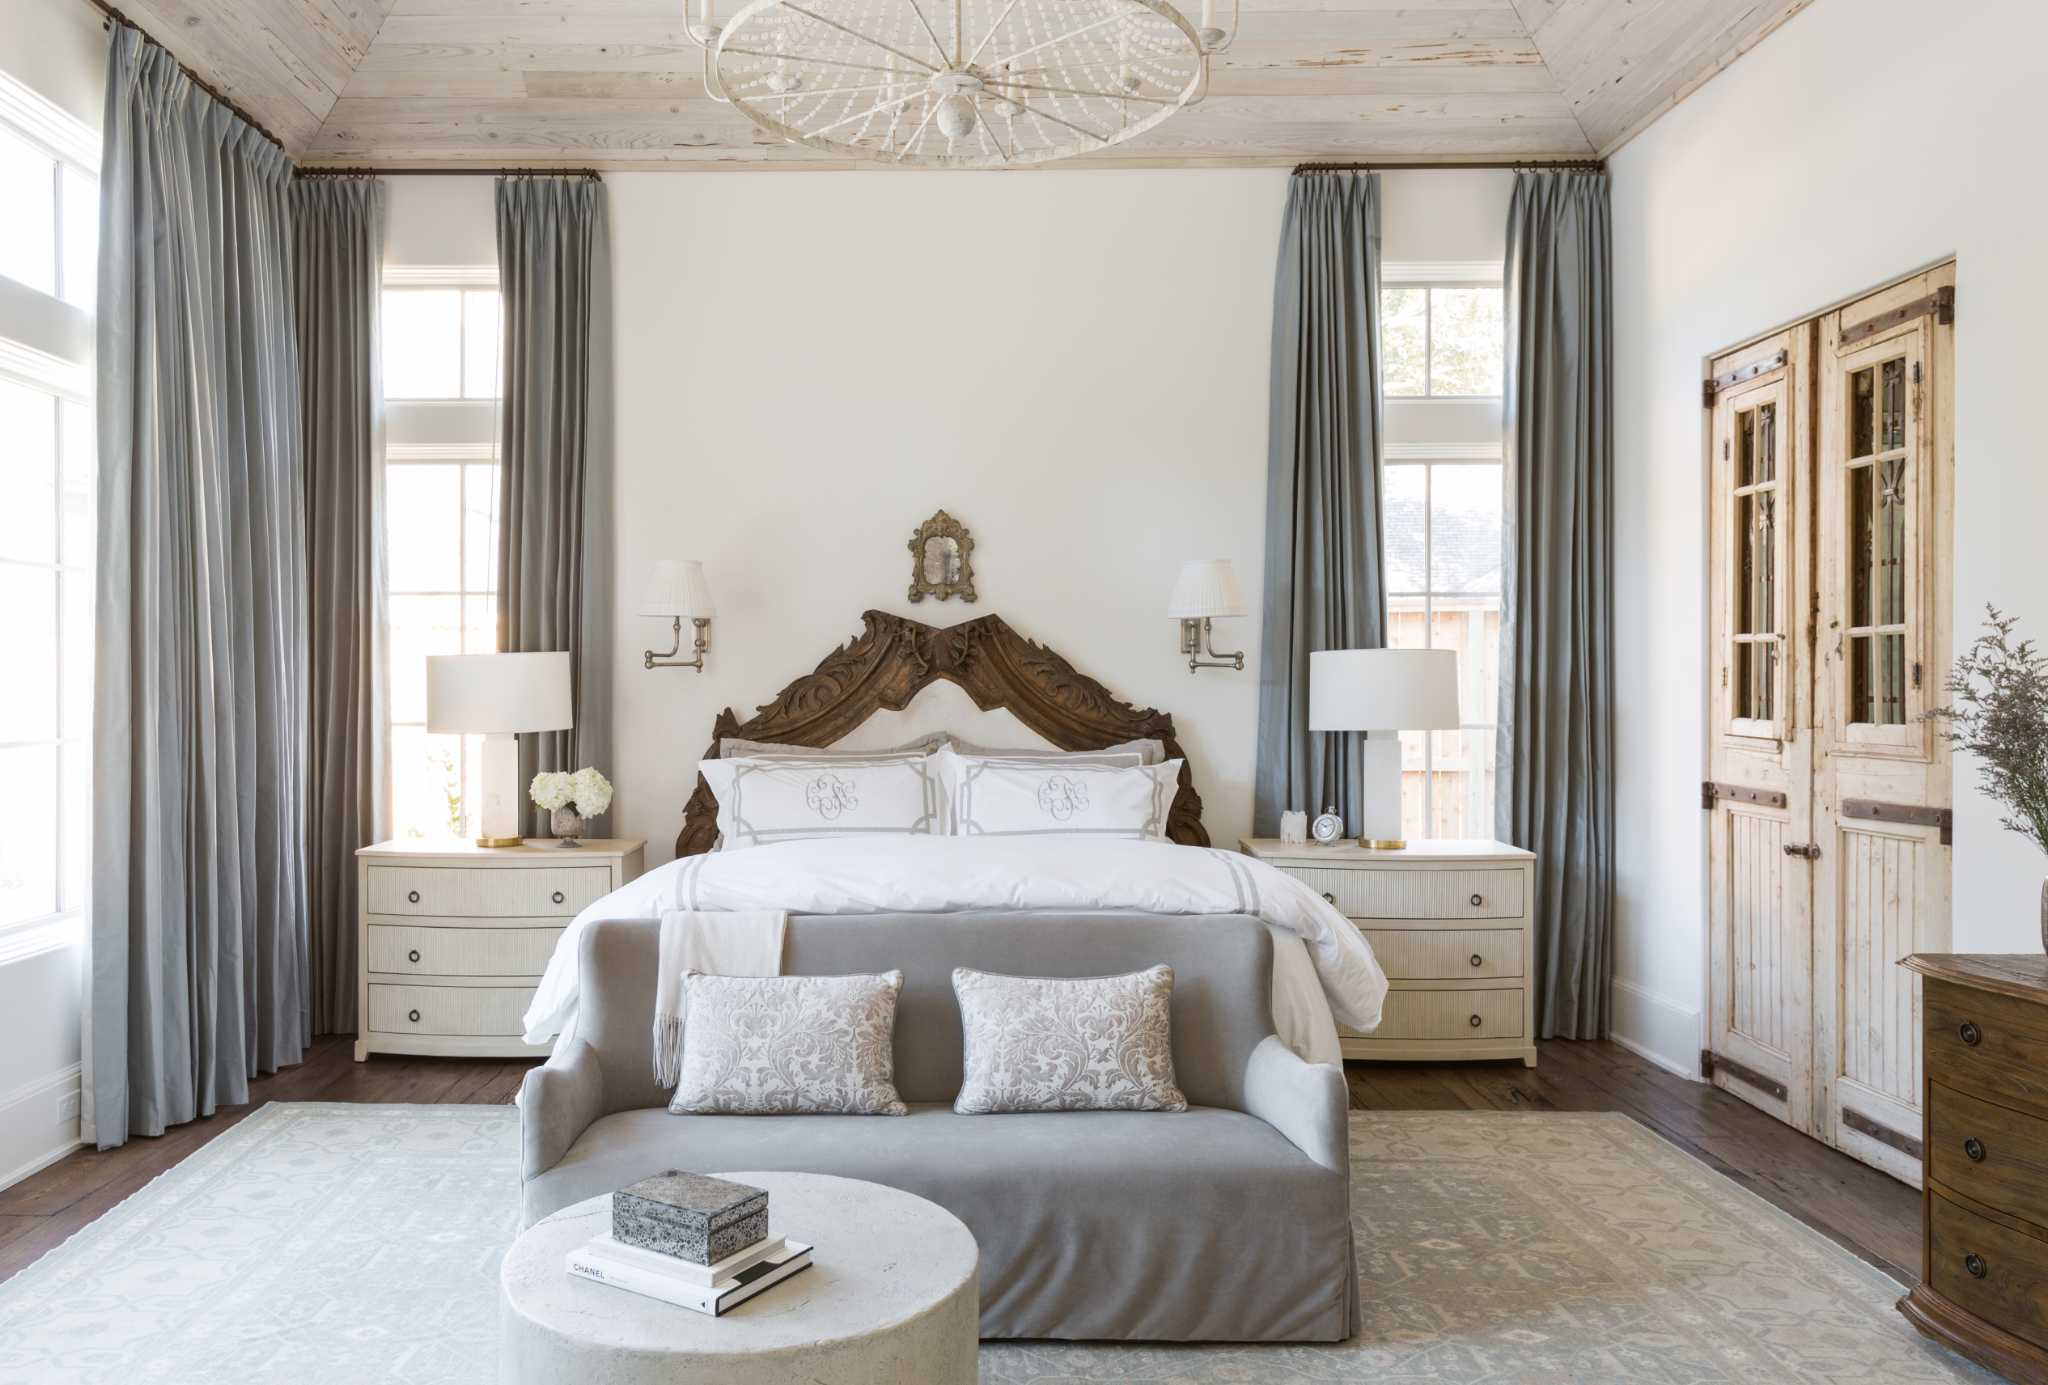 With the help of their architect and interior designer - New orleans style bedroom decorating ideas ...